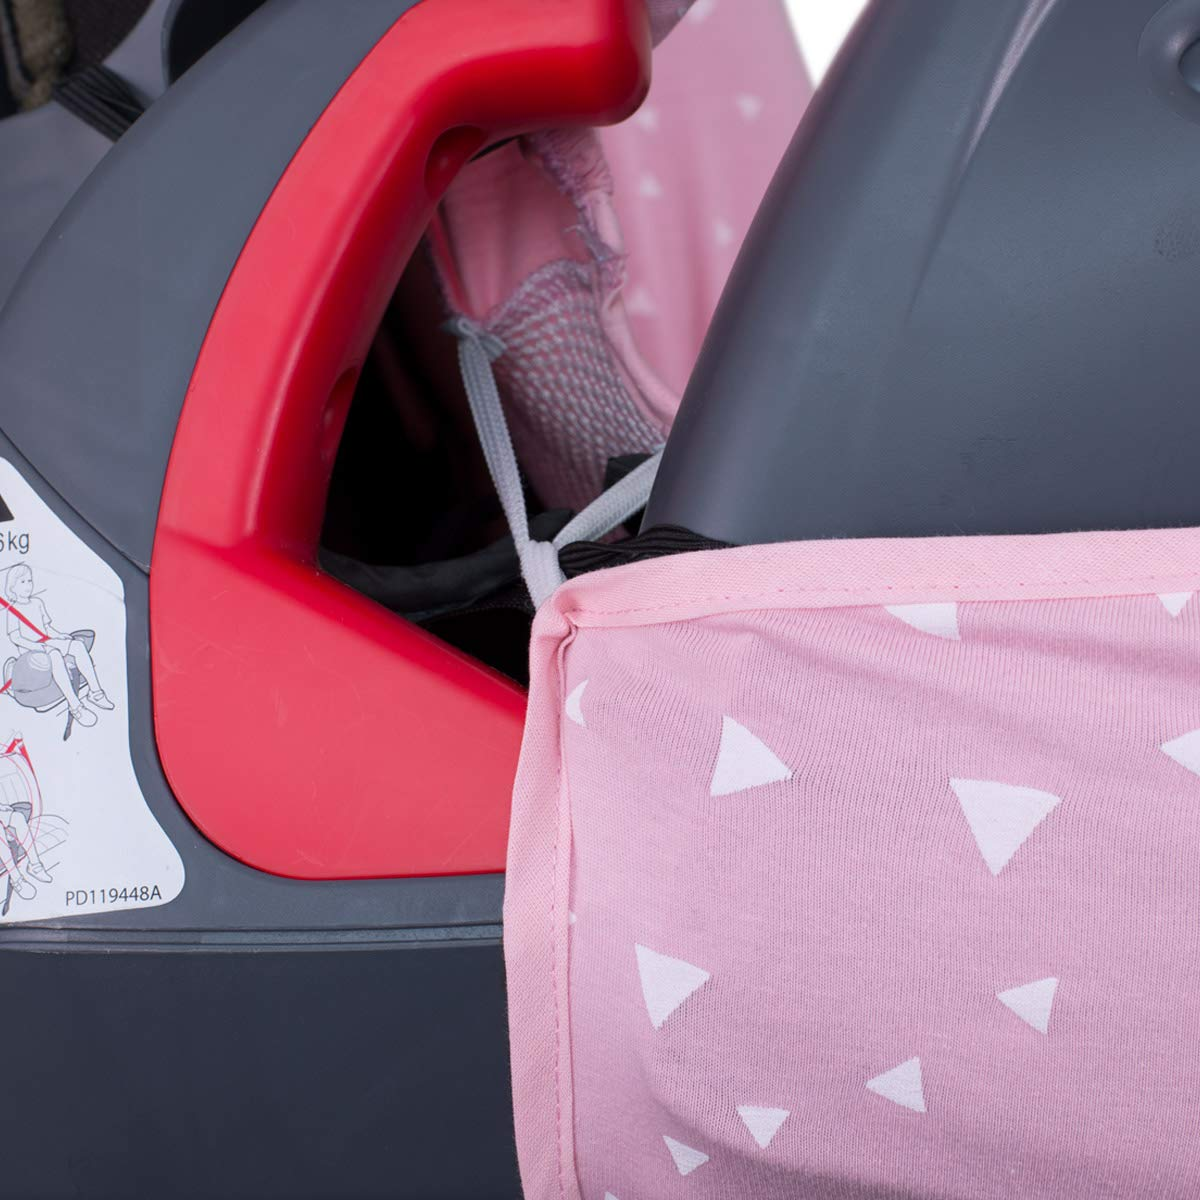 JANABEBE Janabeb/é Foam Cover Liner for Graco Nautilus Car Seat Protector Pink Sparkles